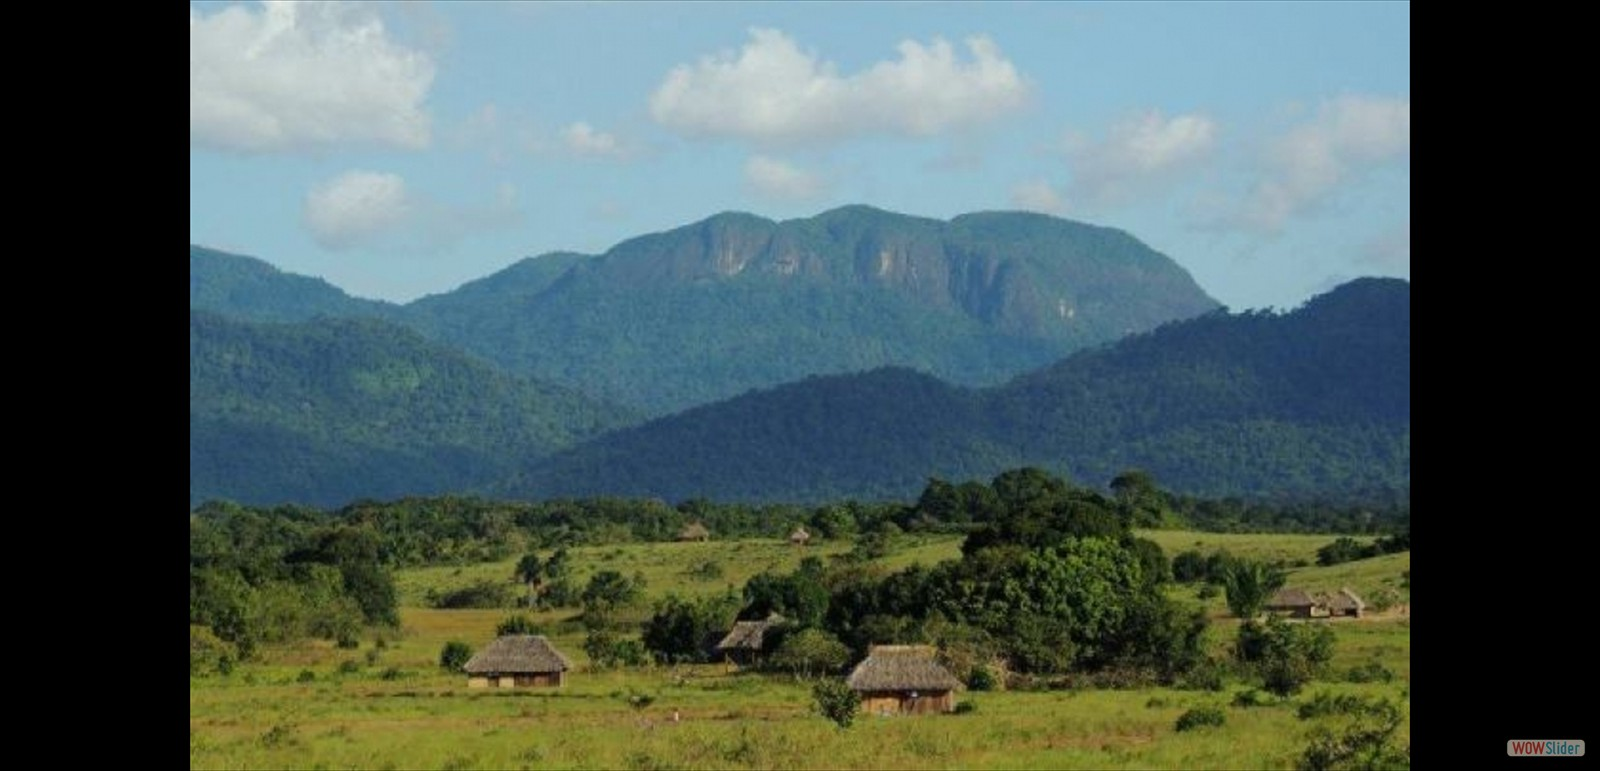 A Rupununi Village surrounded by lots of land